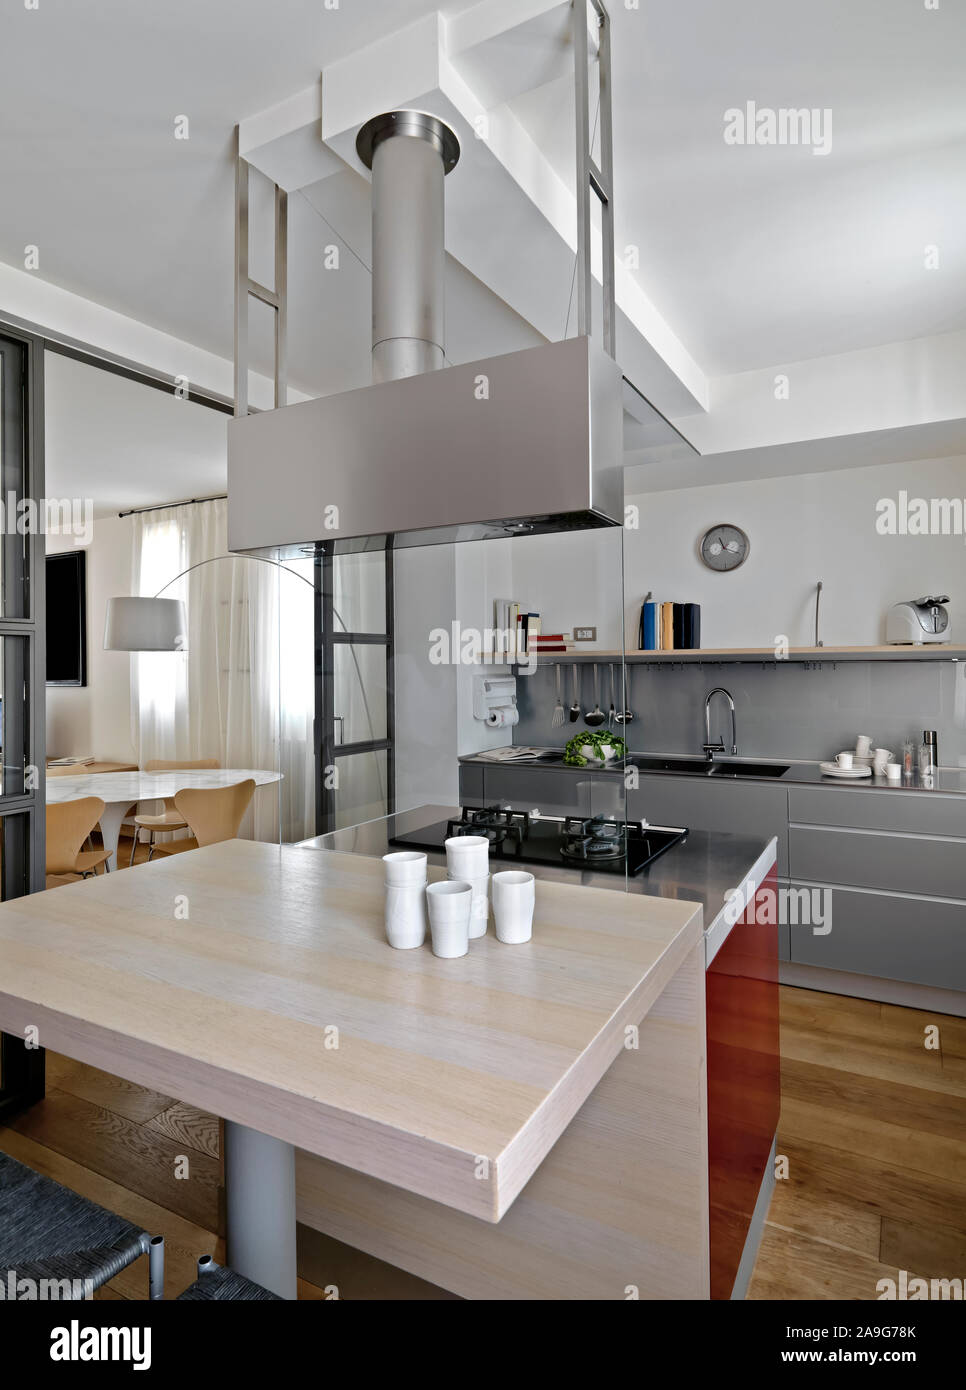 Interior Shot Of A Modern Kitchen In Foreground The Kitchen Island With Wood Dining Table And Gas Hob While On Background The Kitchen Cabinets With Bu Stock Photo Alamy